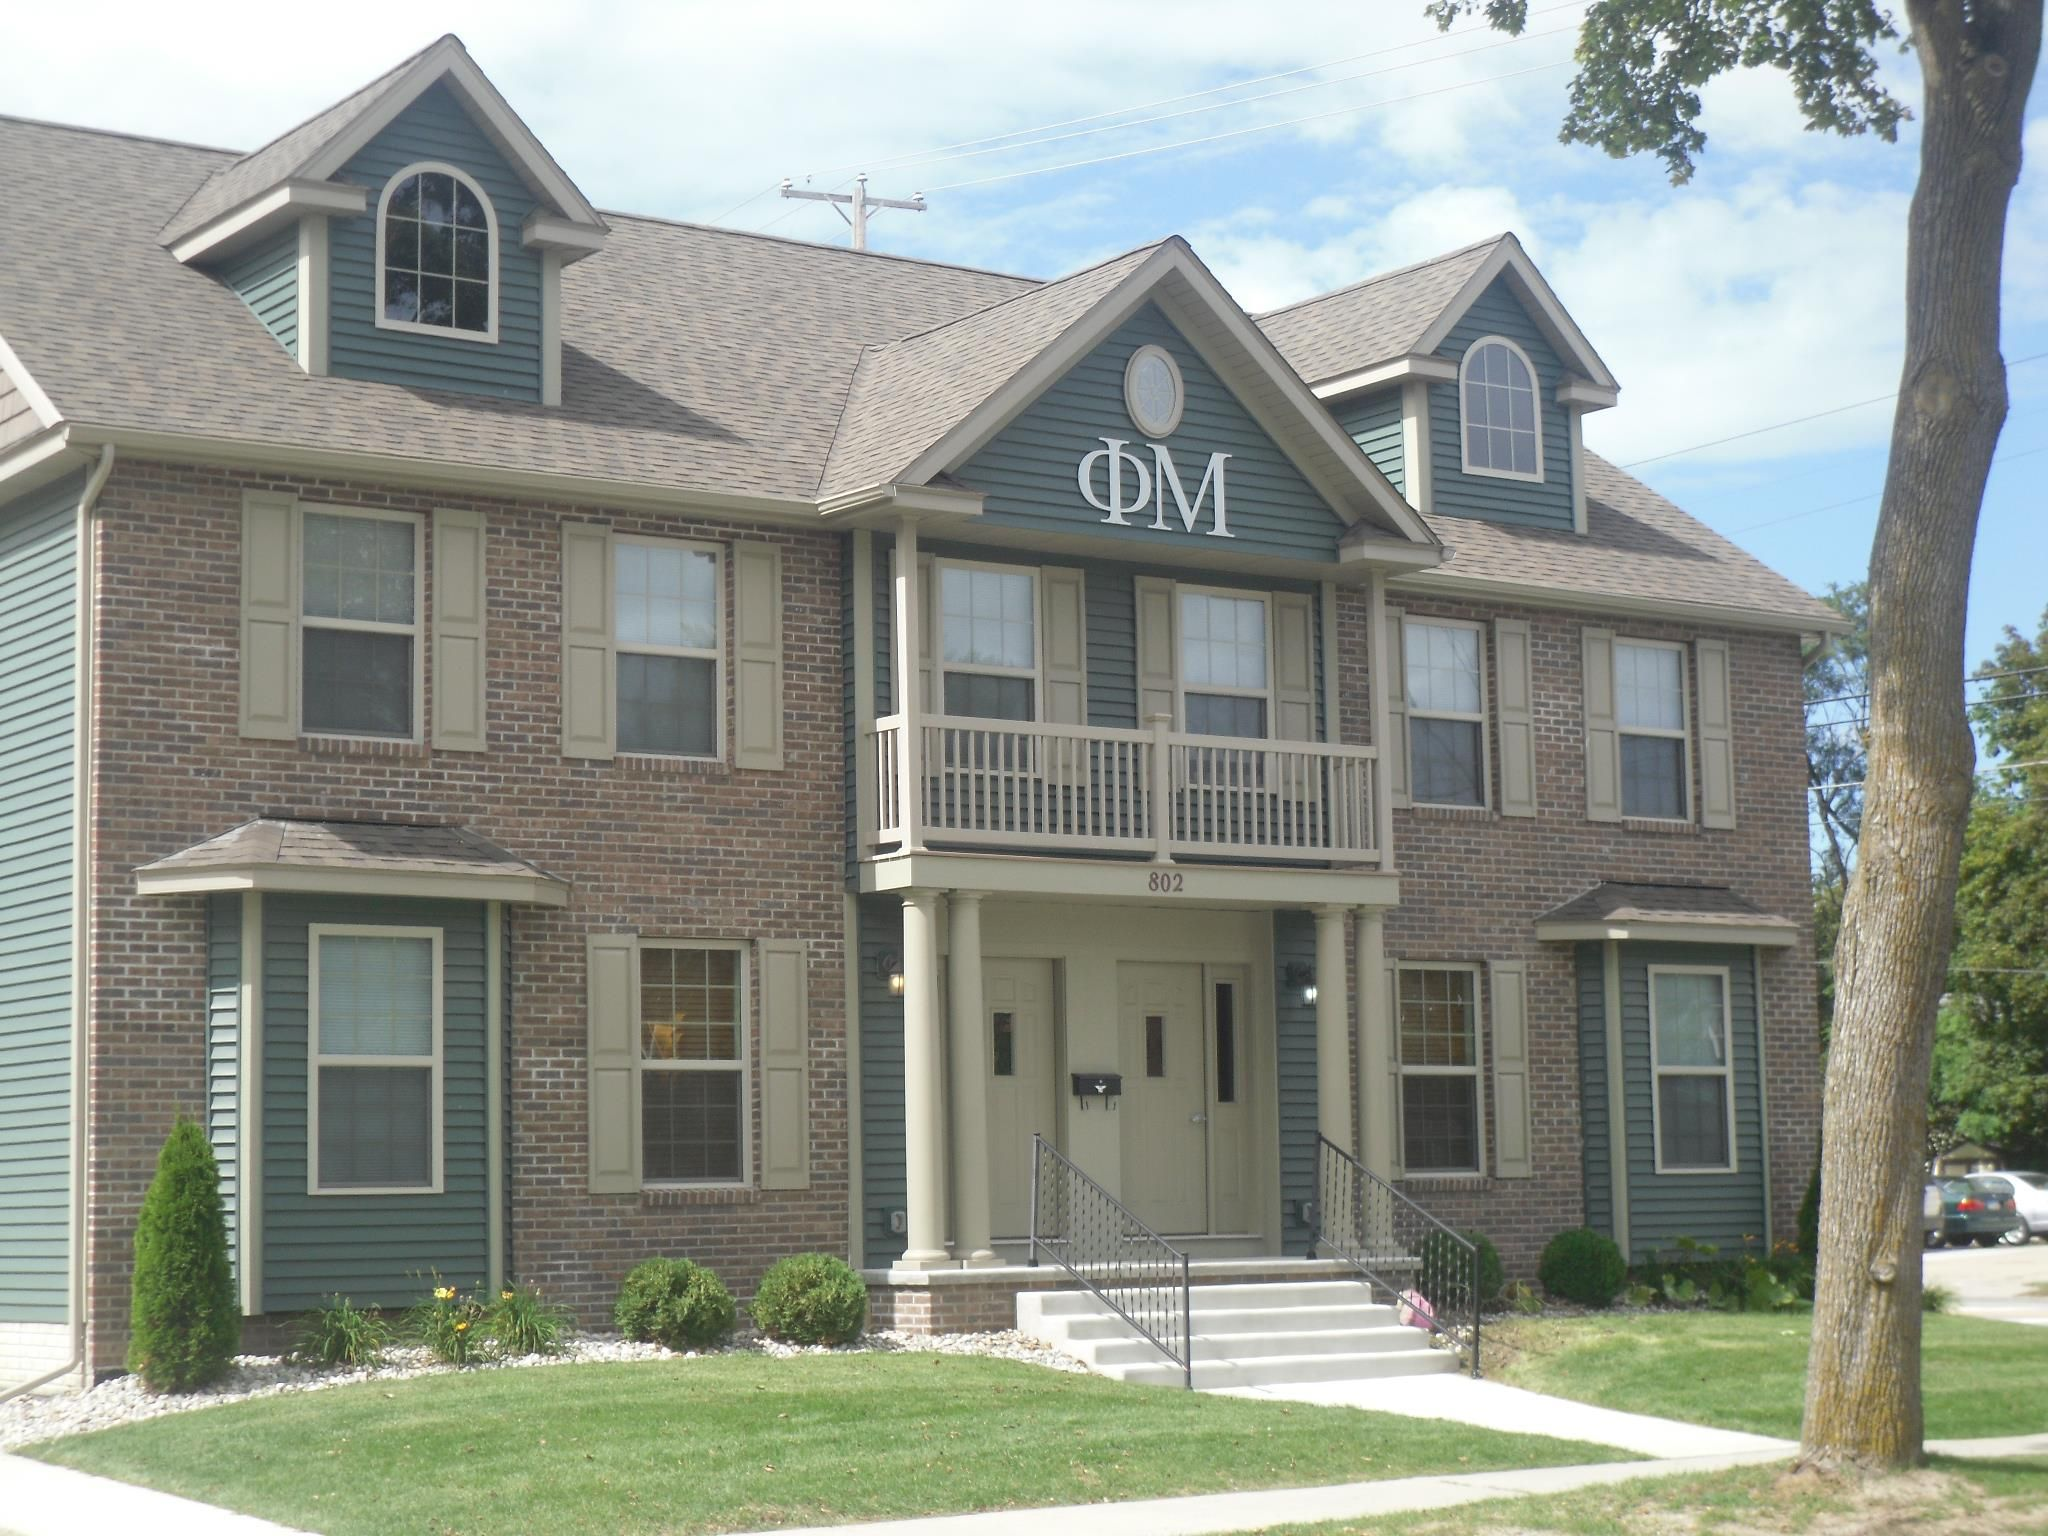 phi mu house at university of missouri | phi mu | pinterest | sorority